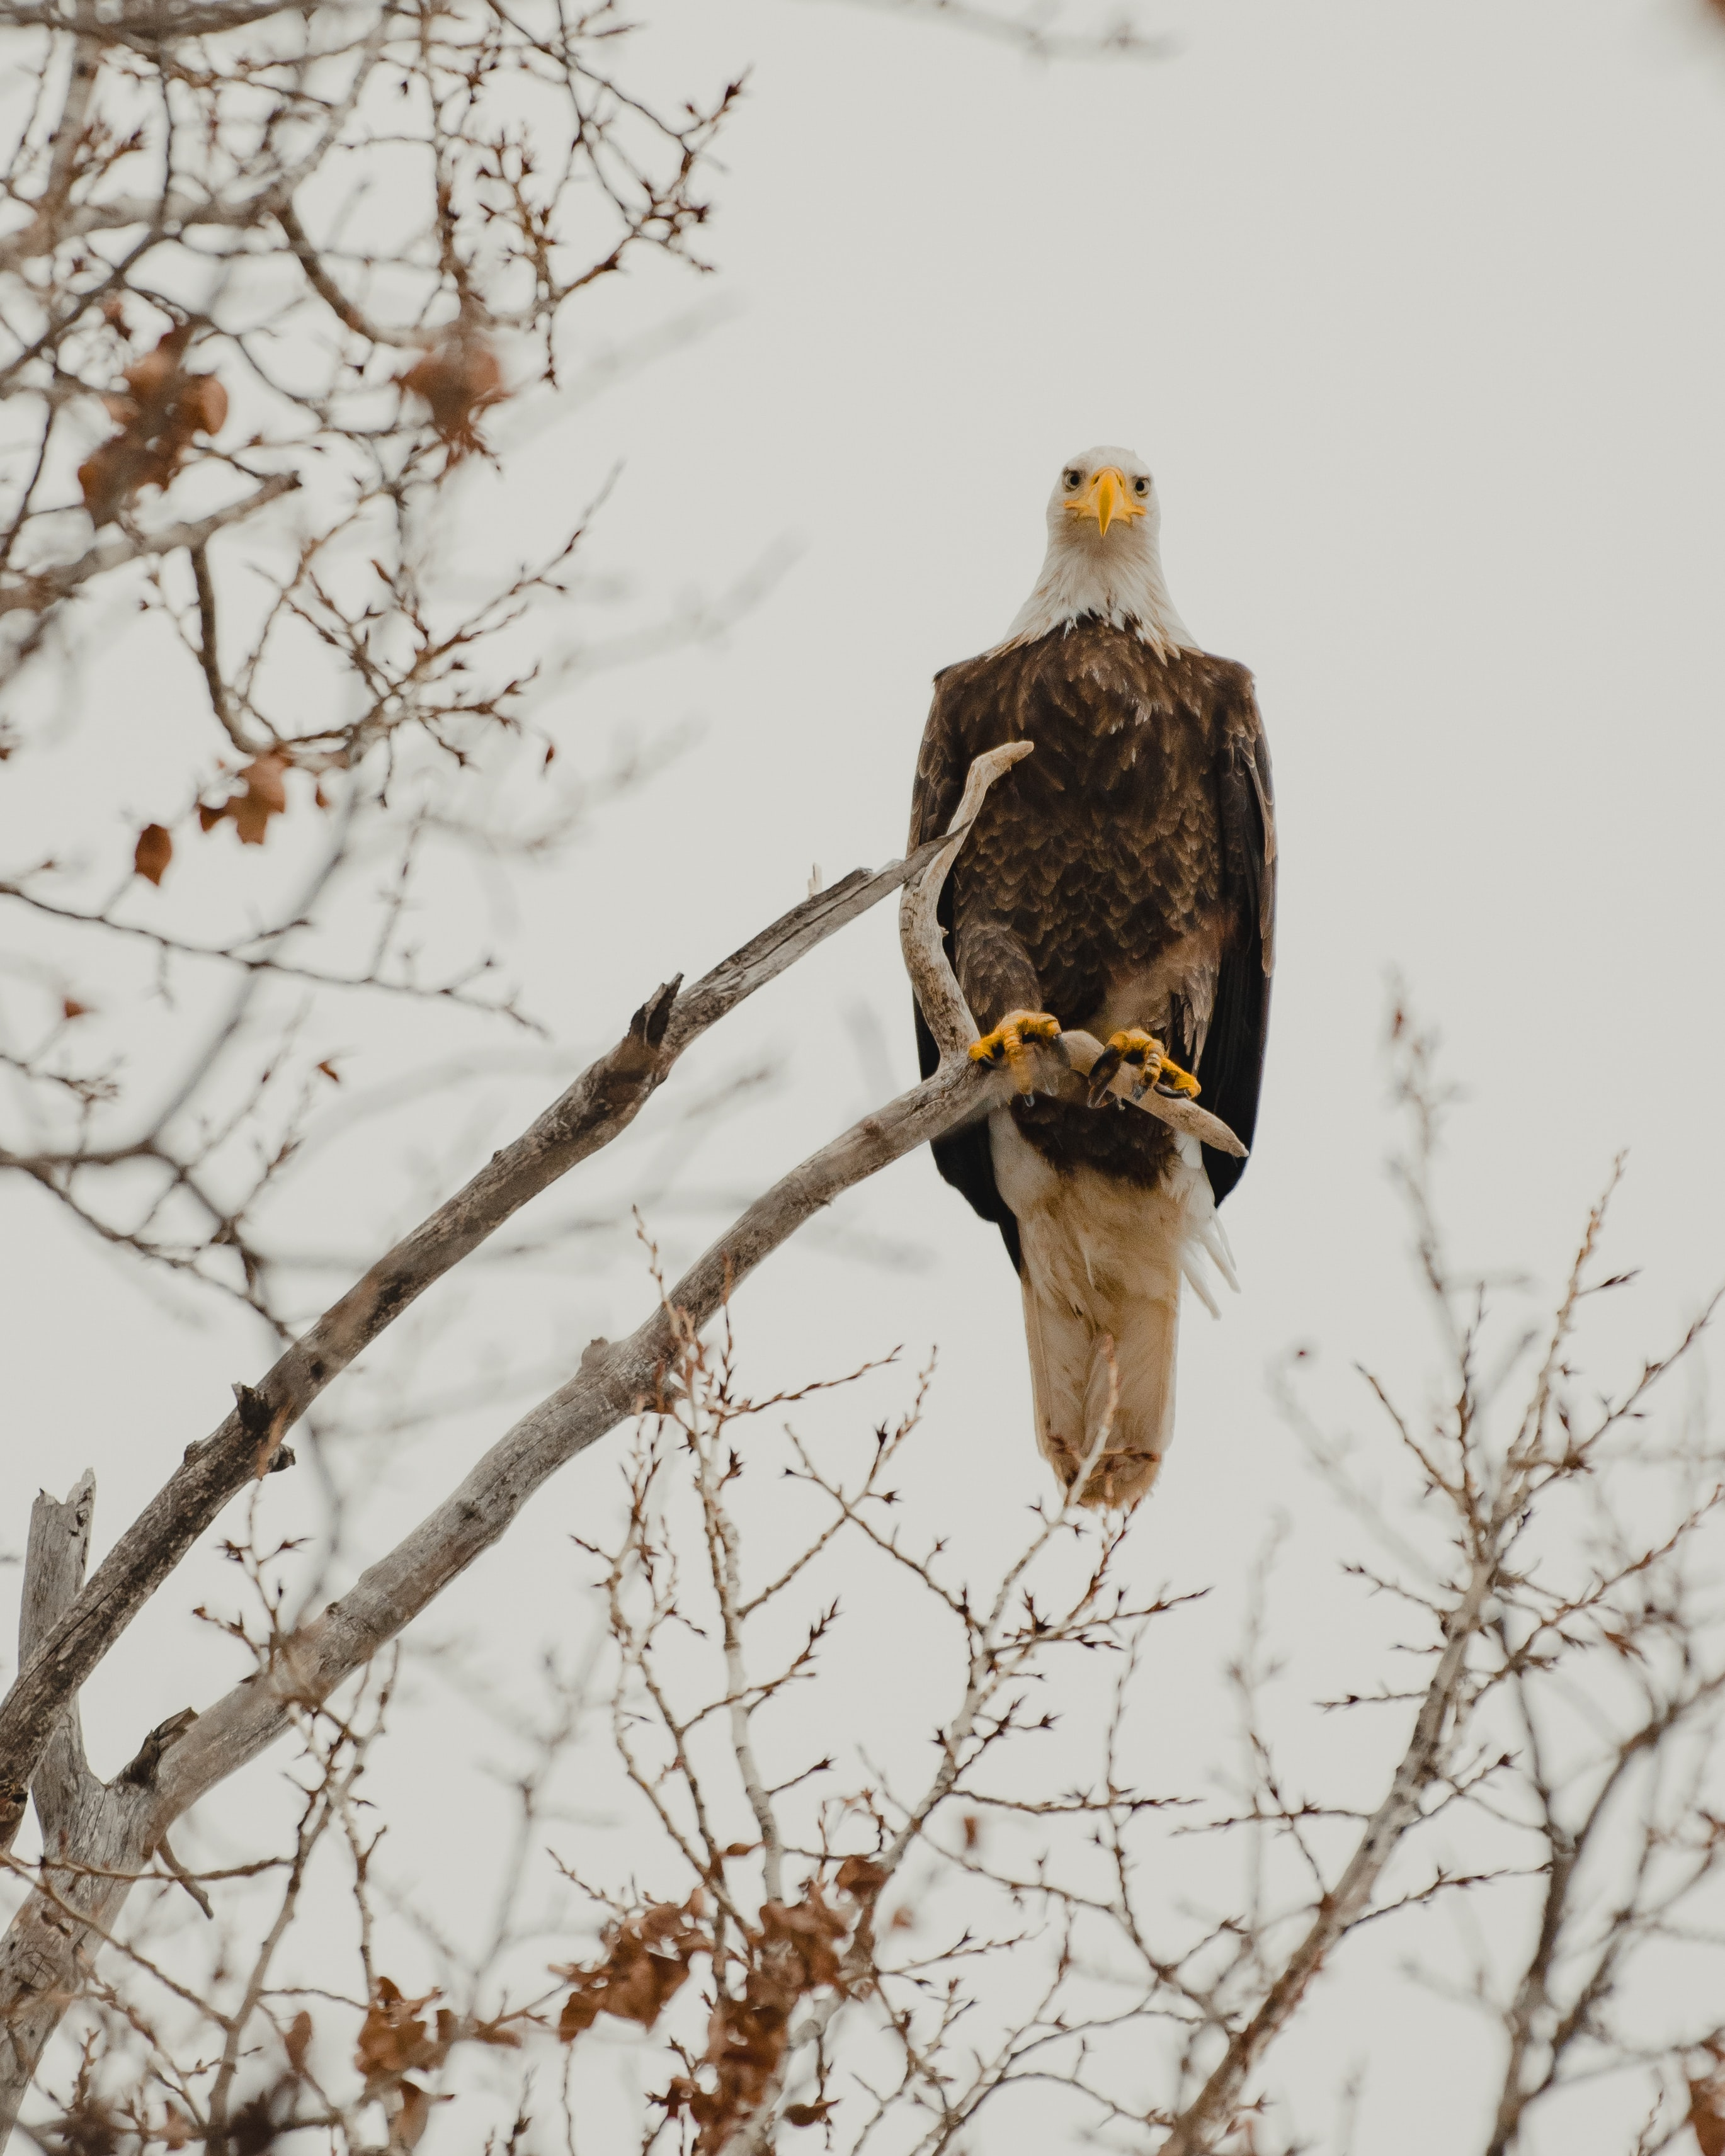 123429 download wallpaper Animals, Bald Eagle, White-Headed Eagle, Eagle, Bird, Predator, Branch, Wildlife screensavers and pictures for free